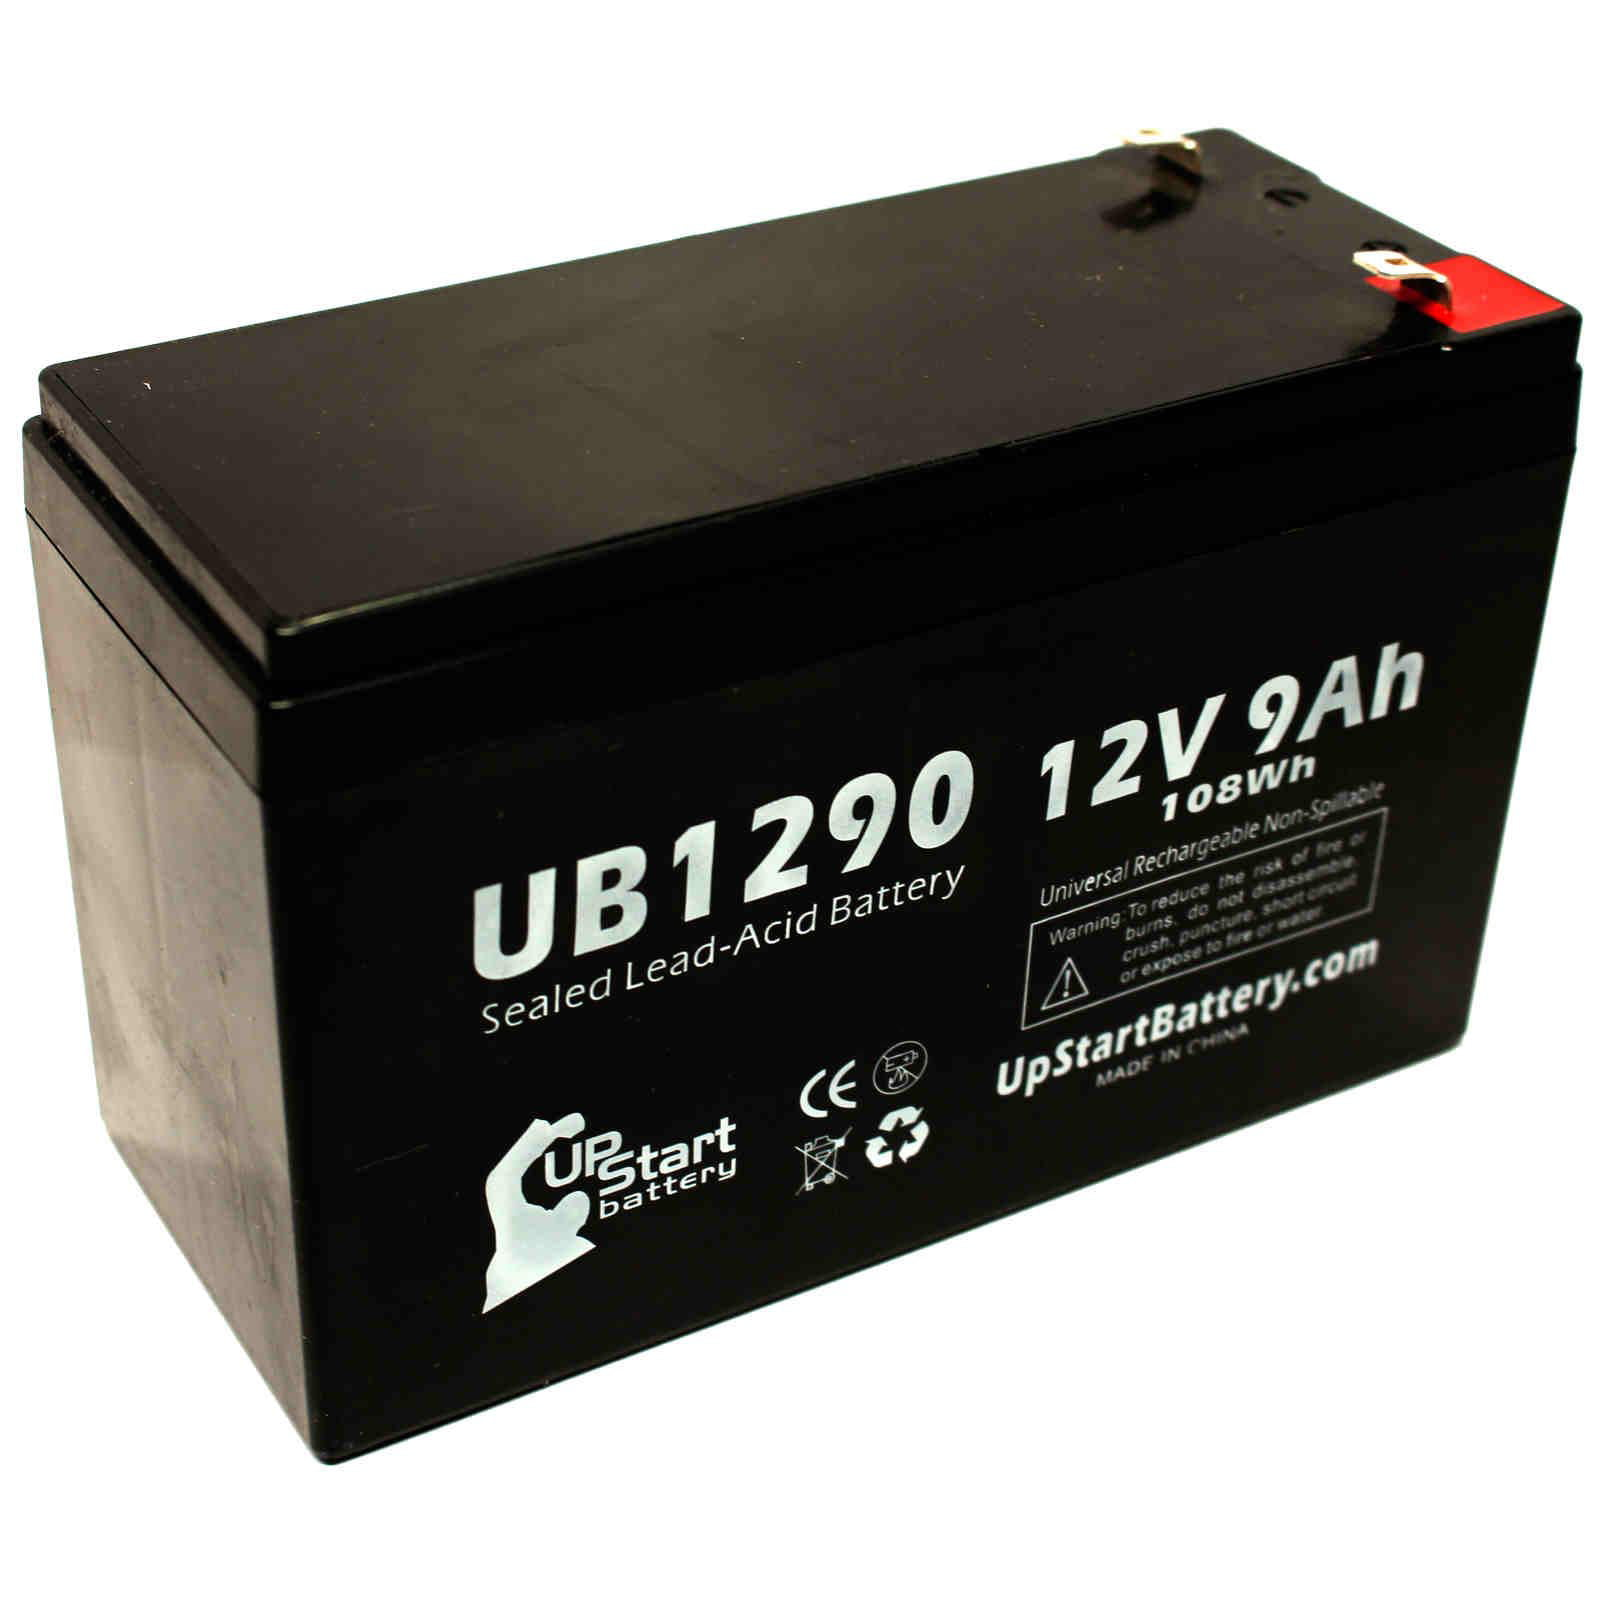 Telesys Db127 Battery Replacement Ub1290 Universal Sealed Lead 12volt Dc Power Plug Optronics Accessories And Parts A Acid 12v 9ah 9000mah F1 Terminal Agm Sla Includes Two To F2